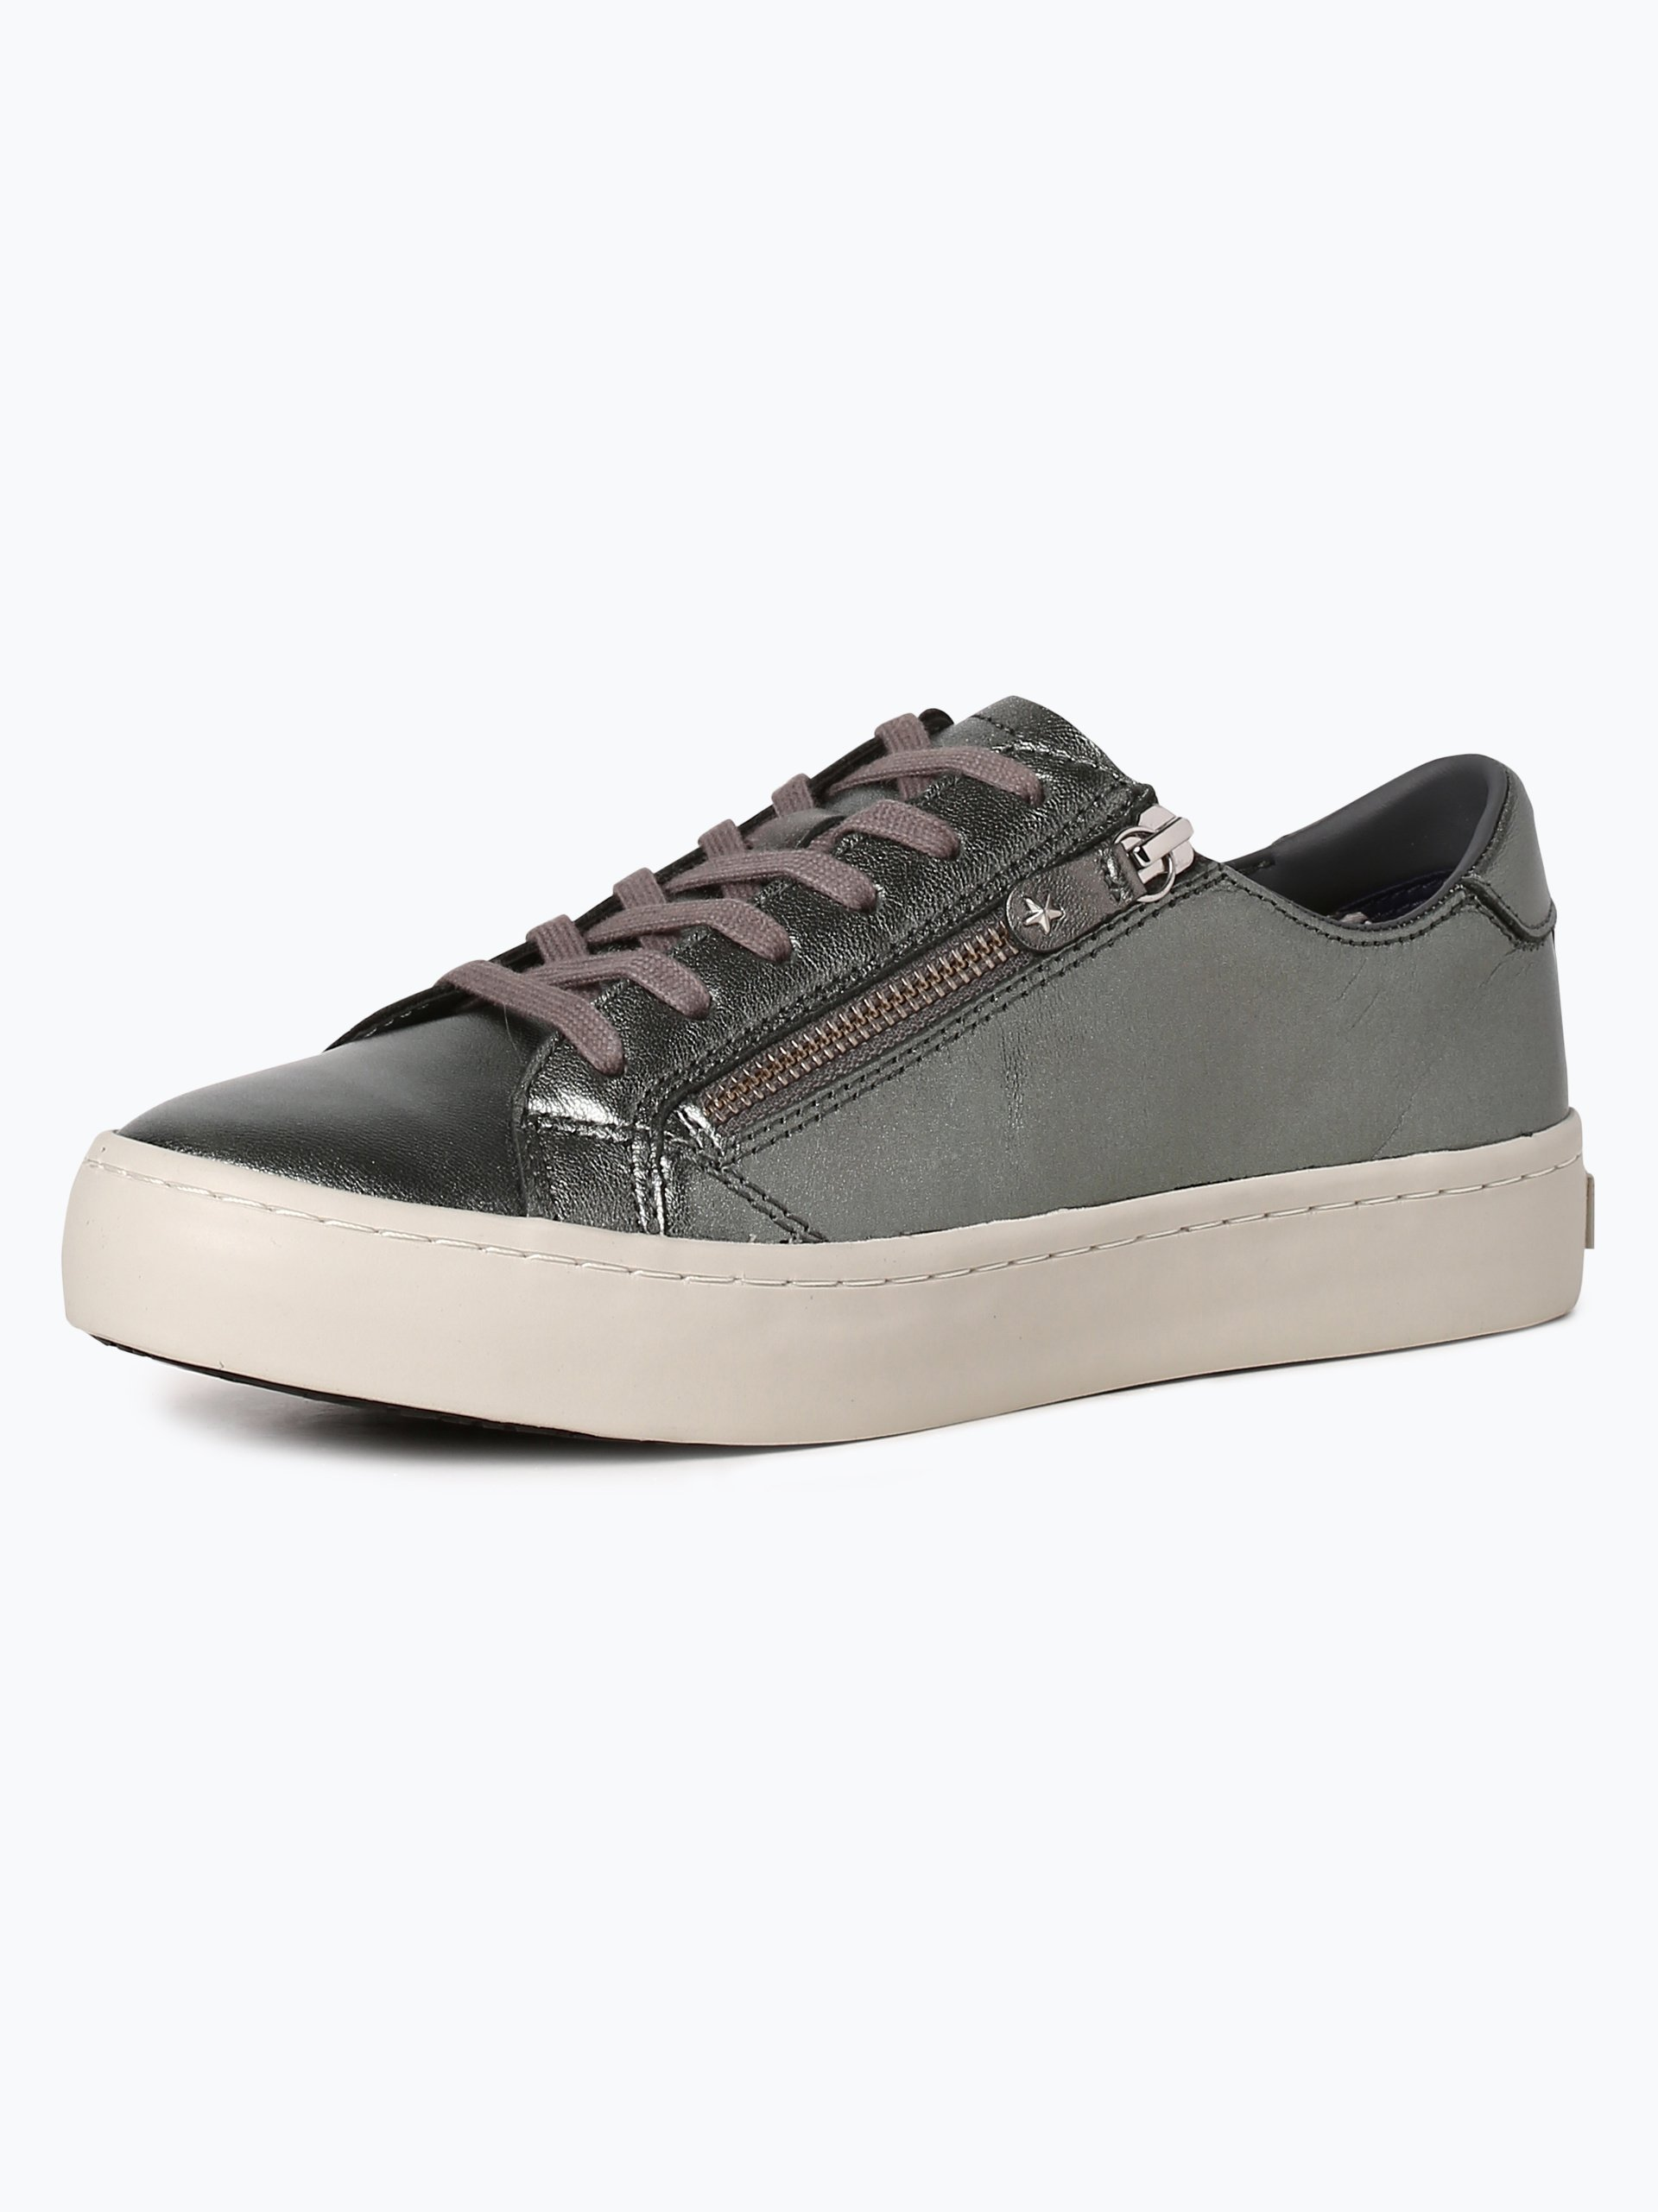 tommy hilfiger damen sneaker aus leder silber uni online kaufen vangraaf com. Black Bedroom Furniture Sets. Home Design Ideas